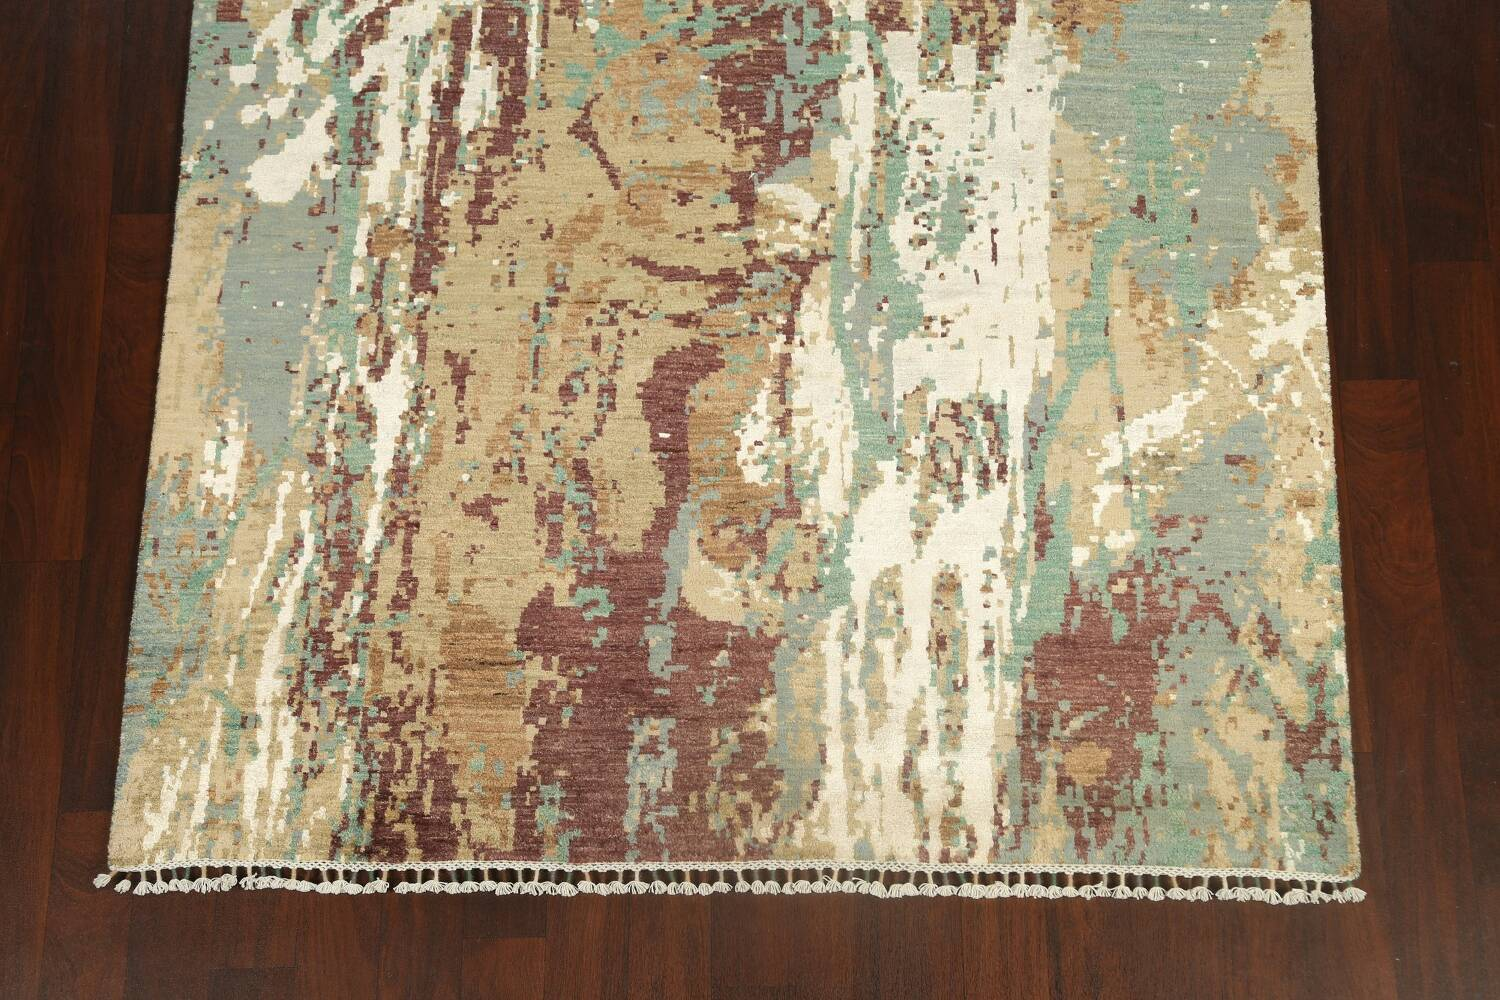 Vegetable Dye Contemporary Abstract Oriental Area Rug 6x9 image 8